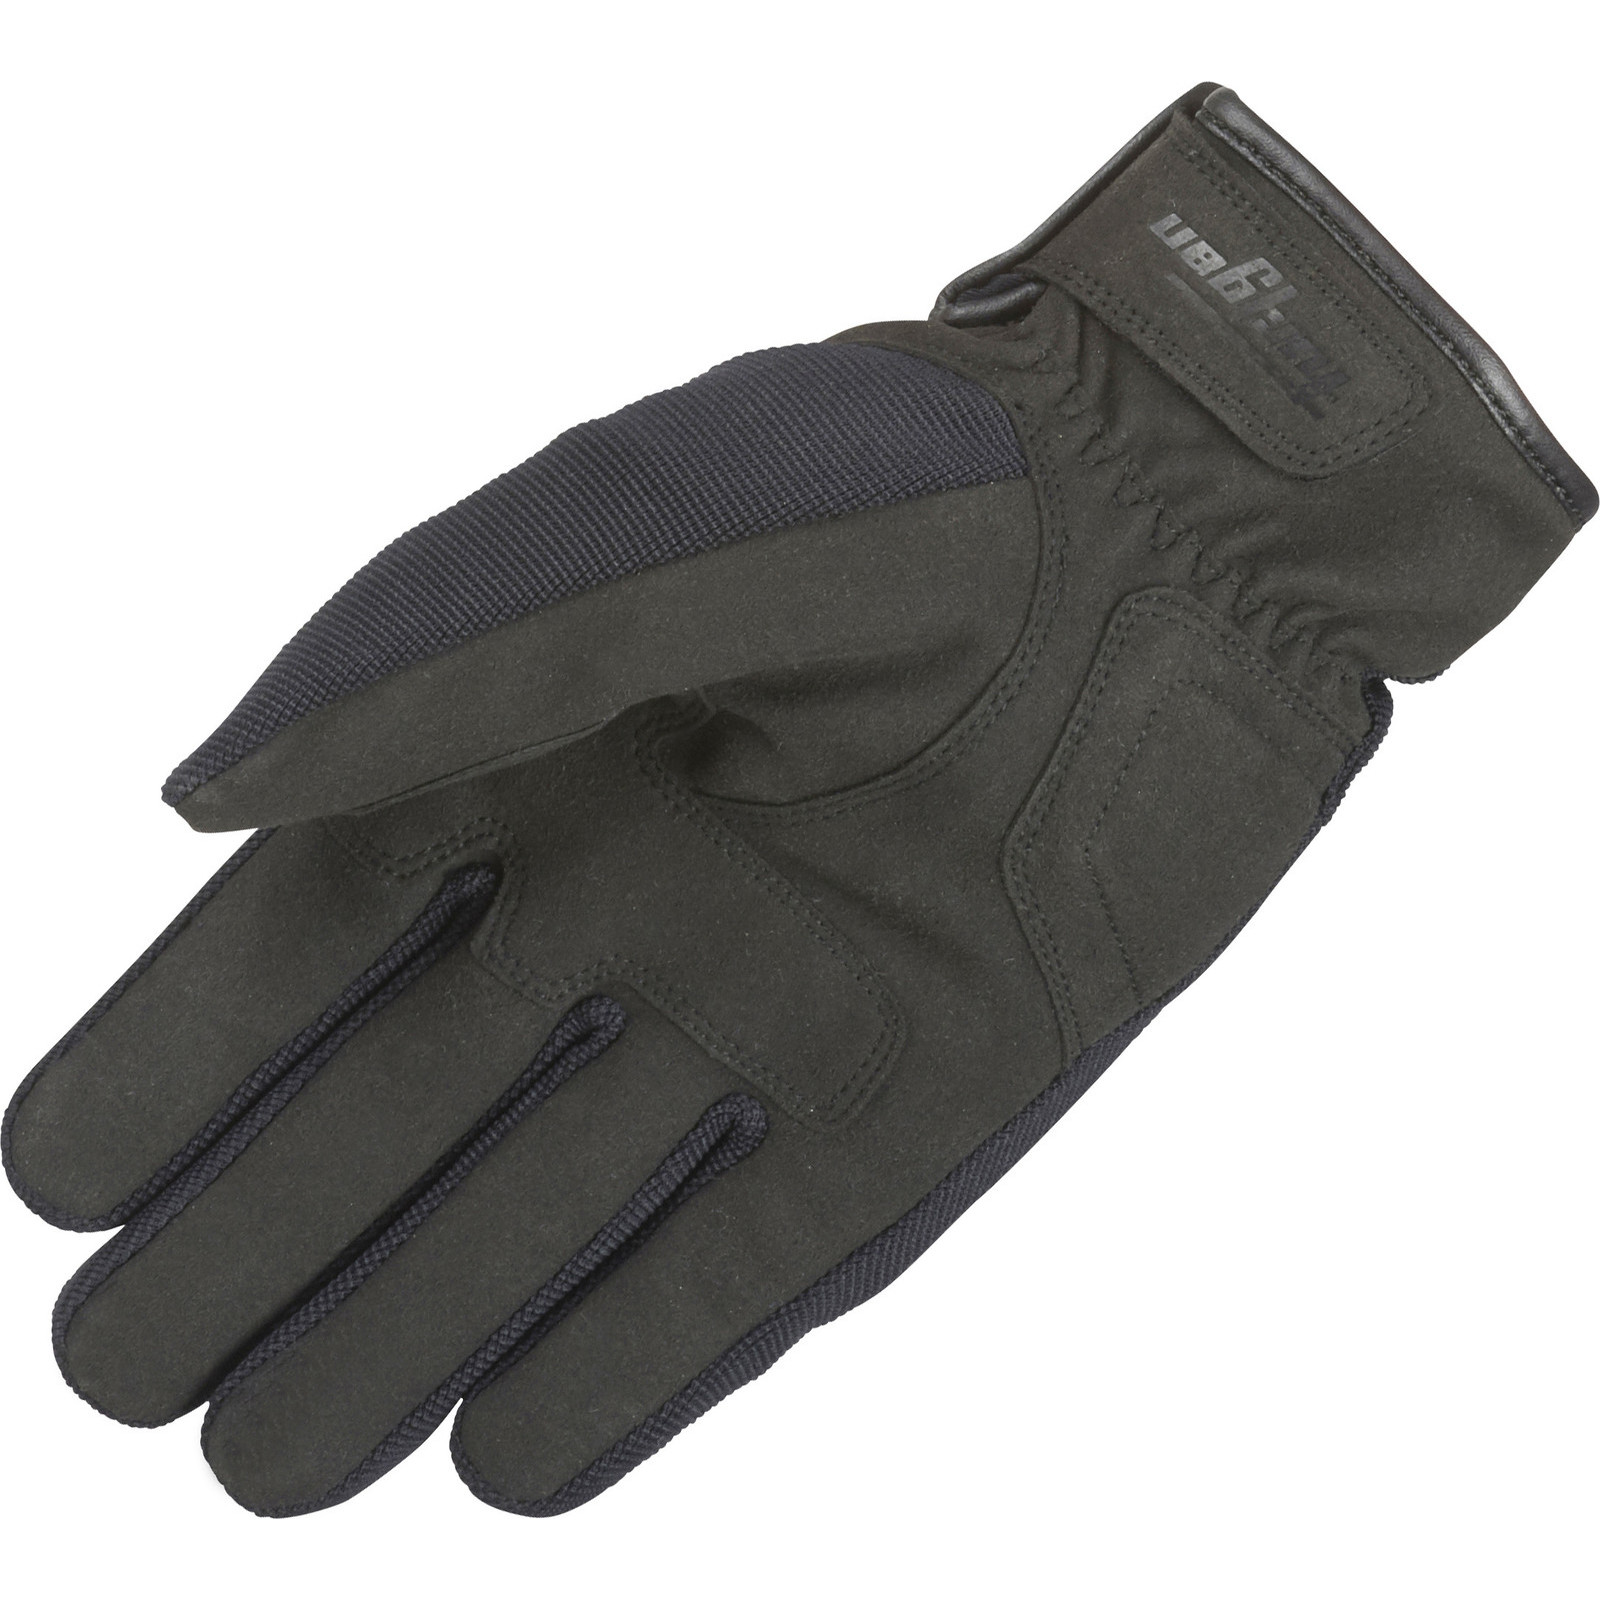 Furygan-Jet-All-Season-Motorcycle-Gloves-Waterproof-Textile-Biker-Short-Glove